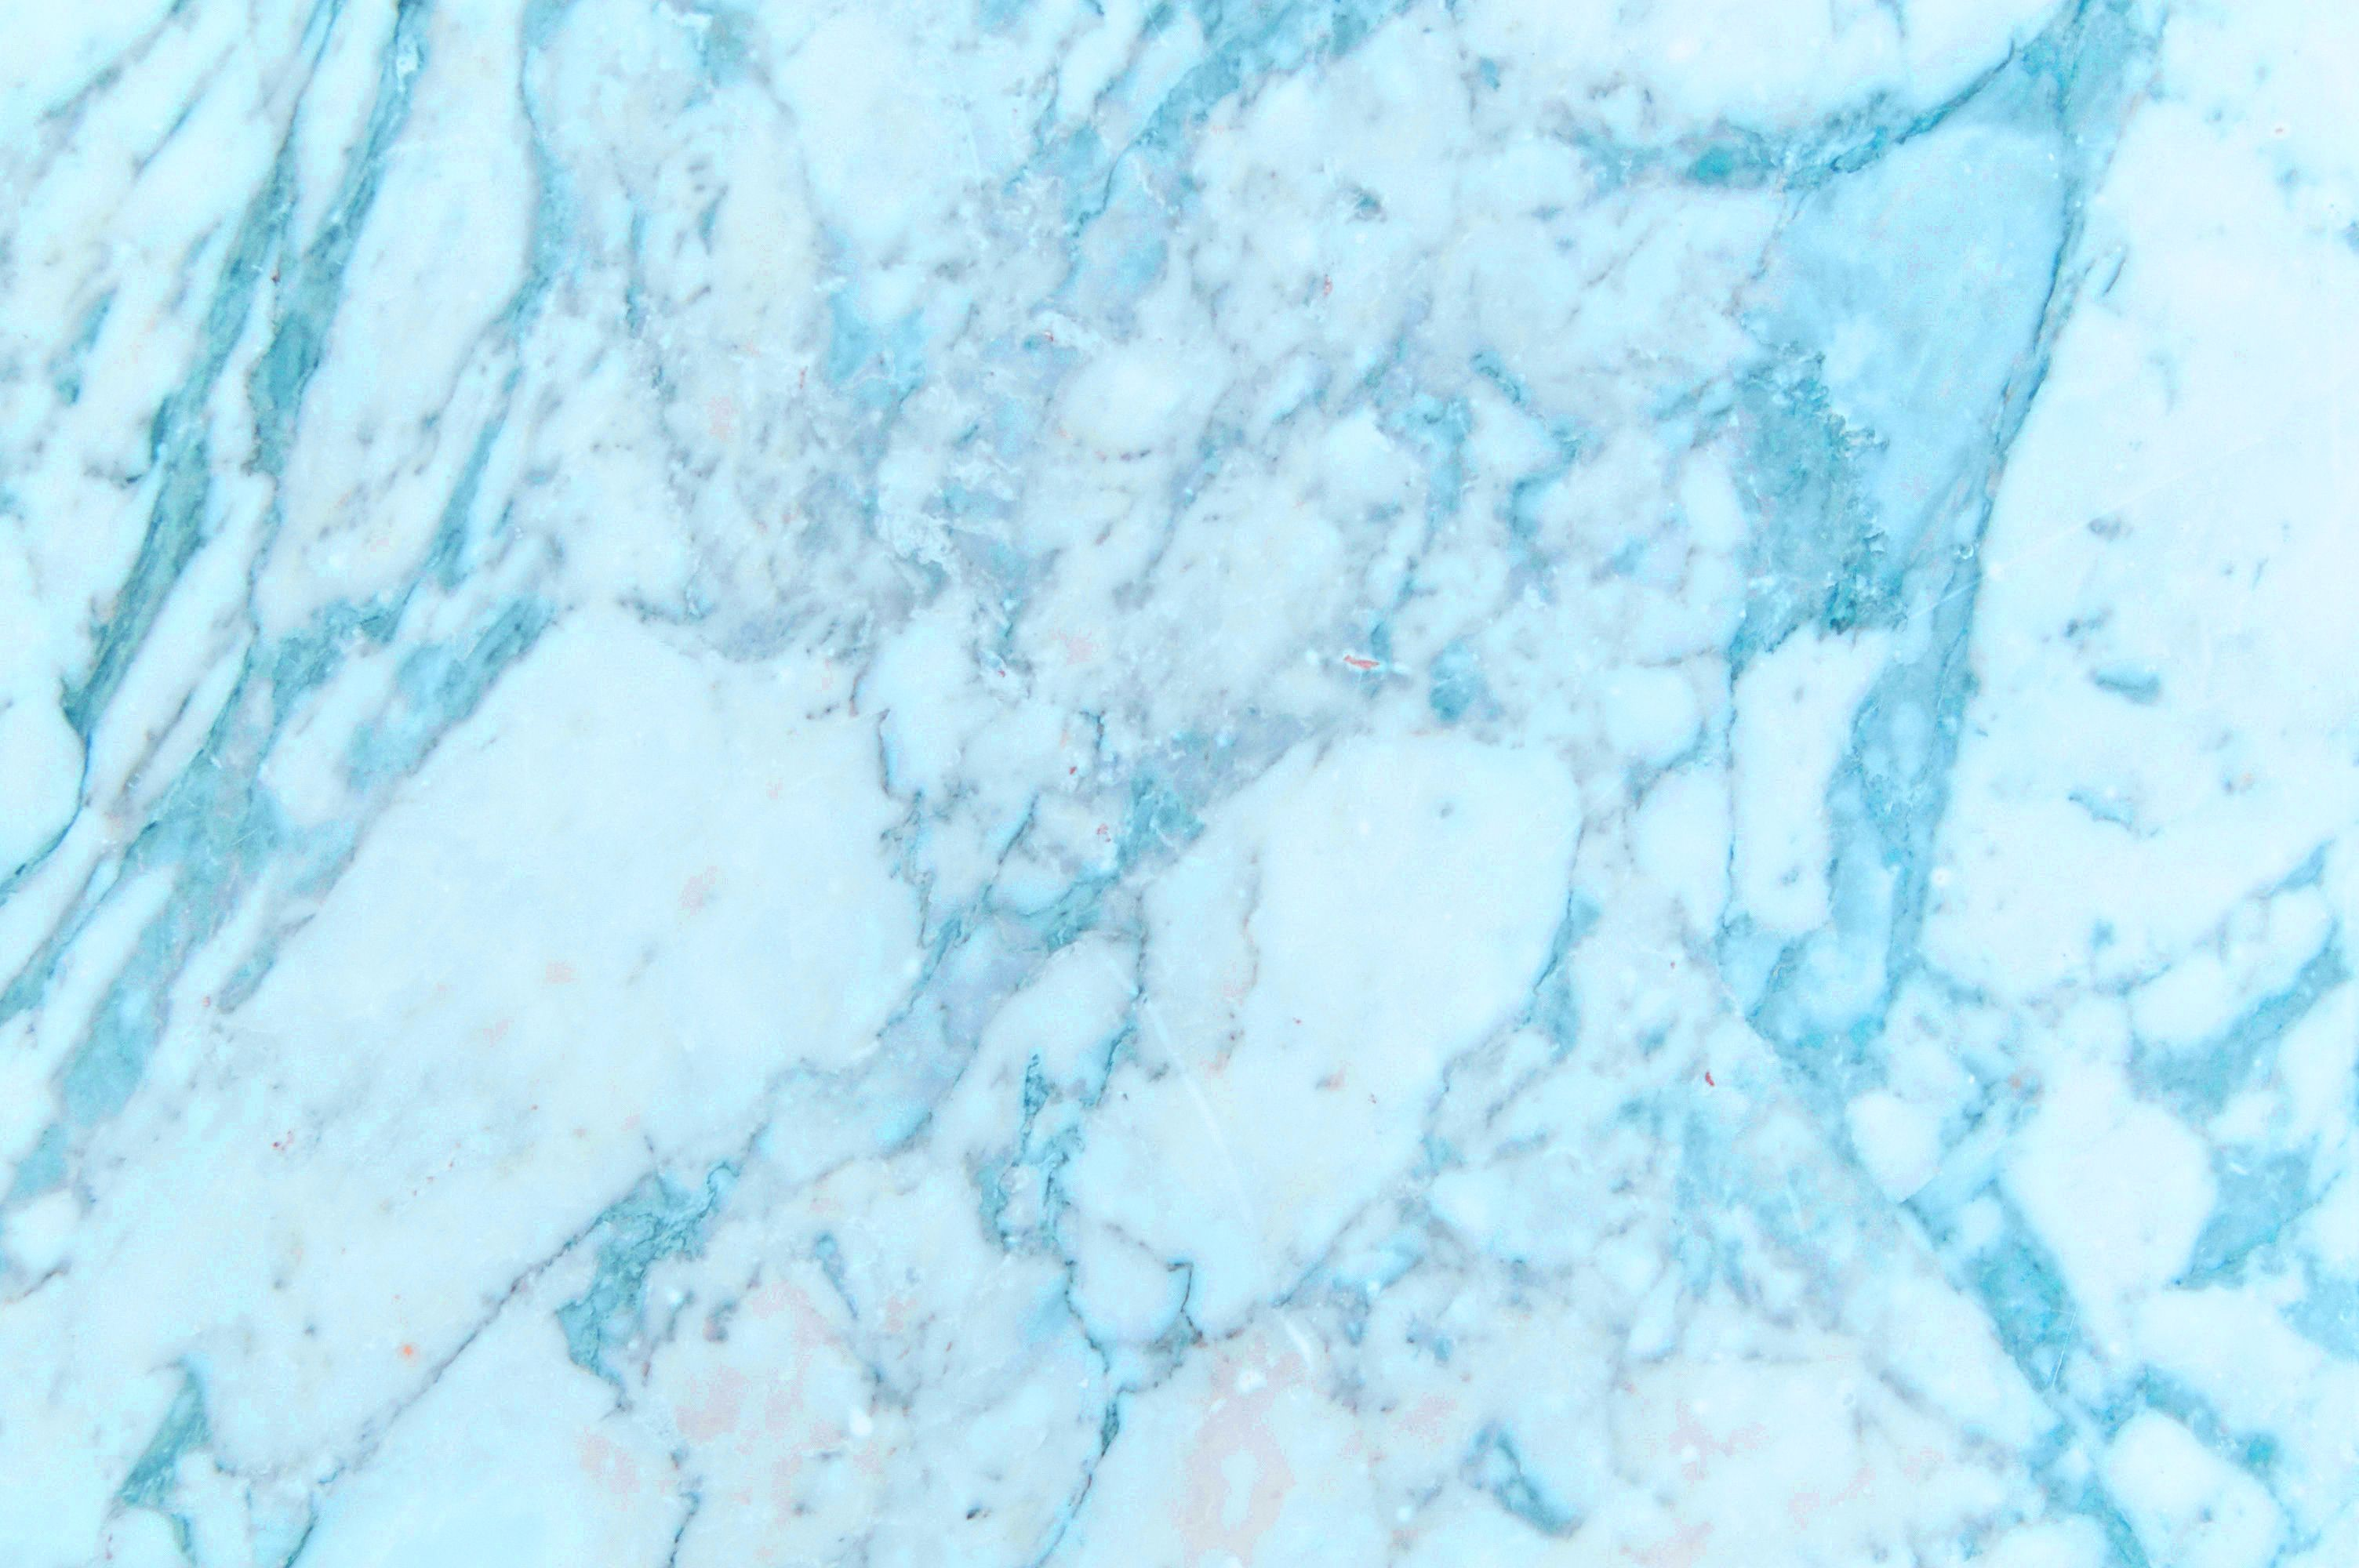 25 Tumblr Marble Desktop Wallpapers Download At Wallpaperbro Pretty Computer Backgrounds Blue Marble Wallpaper Blue Marble